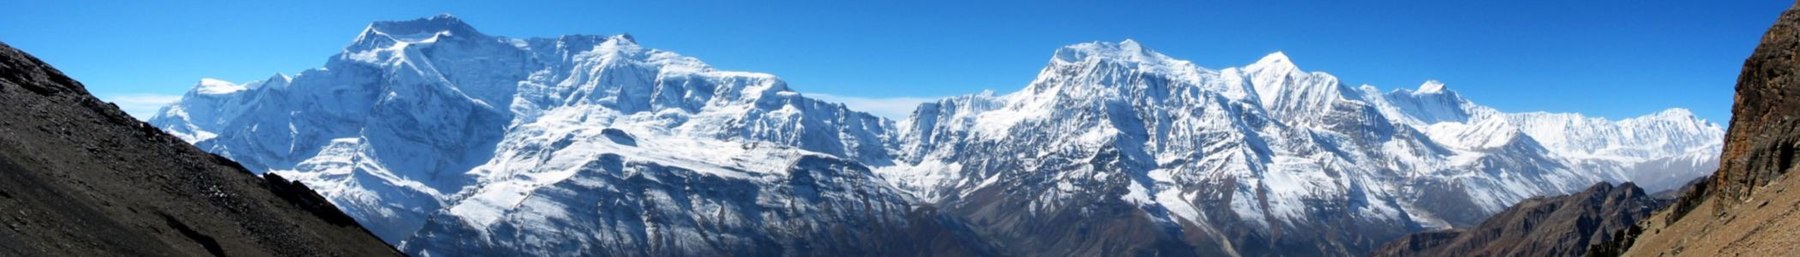 The north face of Annapurna Himal in Nepal.